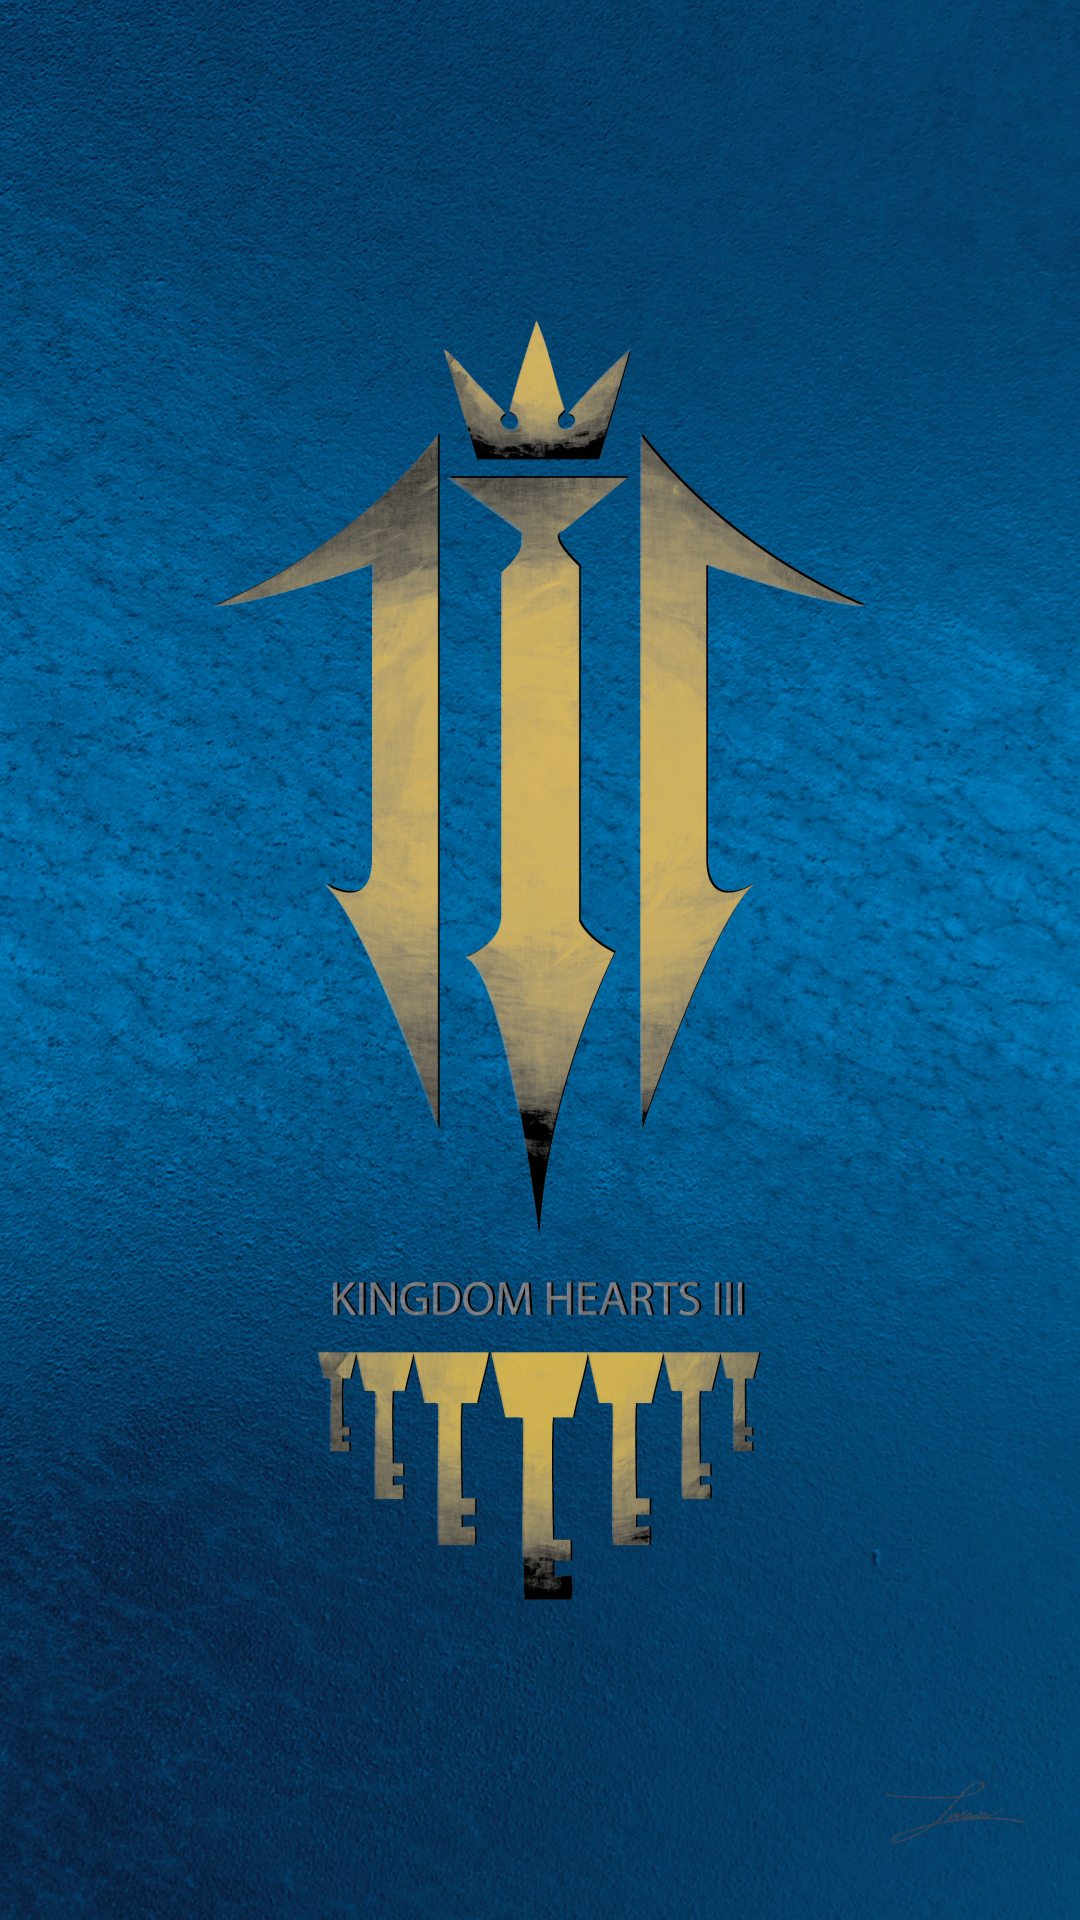 To Mark The Eleventh Anniversary Of The Kingdom Hearts Series And The Release And Announcement Of Kingdom Hea Kingdom Hearts 3 Kingdom Hearts Hd Kingdom Hearts